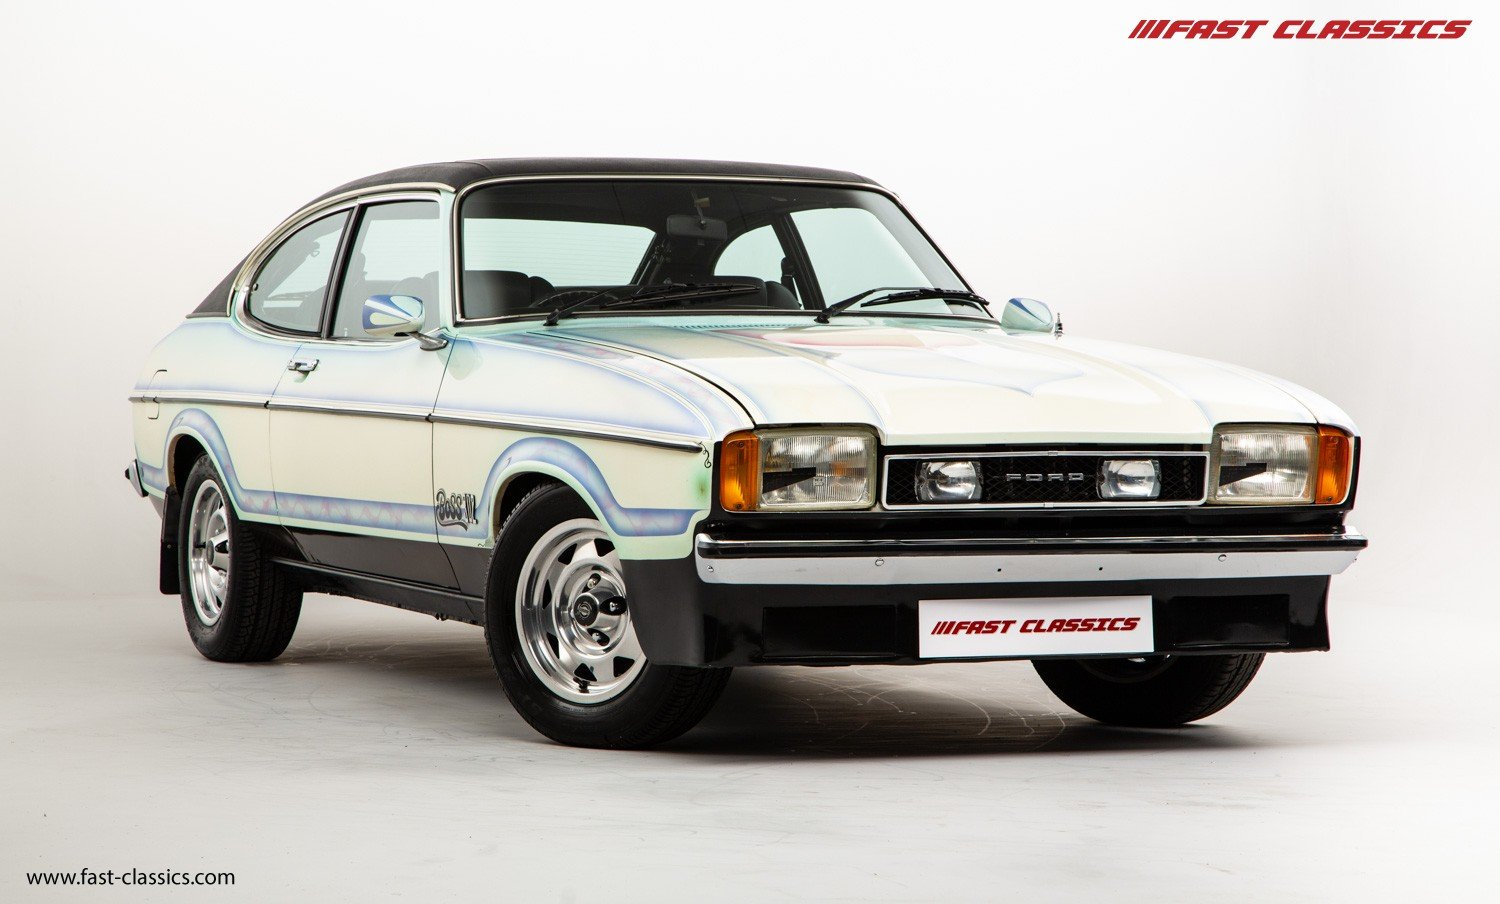 1974 FORD CAPRI STAMPEDE // 1 OF 1 // BOSS 302 V8 ENGINE For Sale (picture 2 of 6)